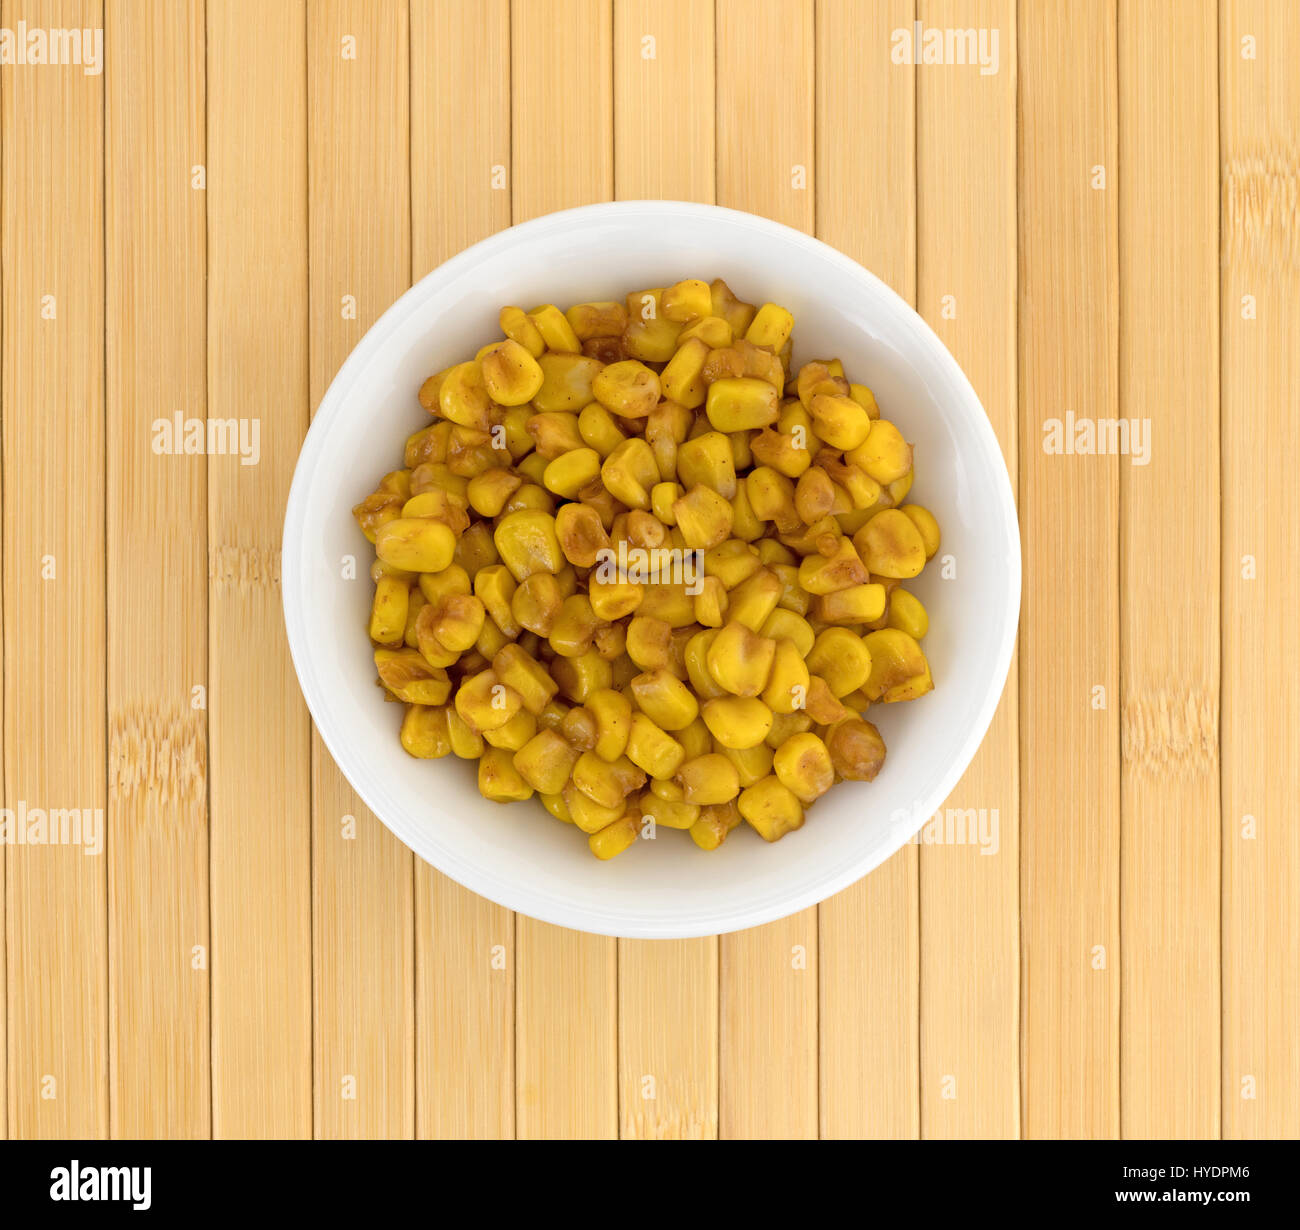 Top view of a white bowl filled with barbecue flavored cut corn on a wood place mat. - Stock Image